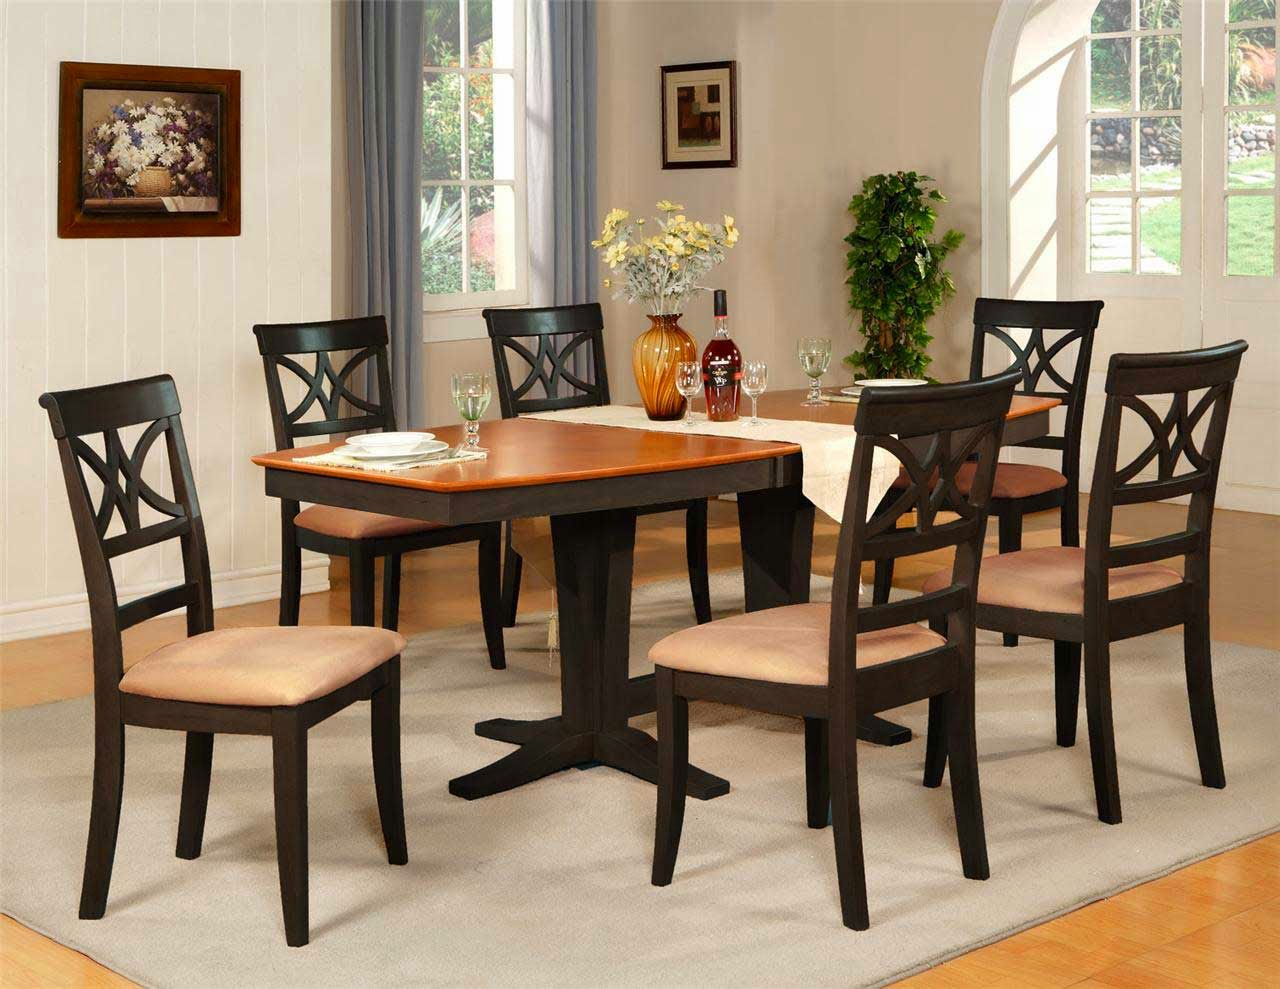 Dining room table centerpiece ideas for Centerpiece on dining room table